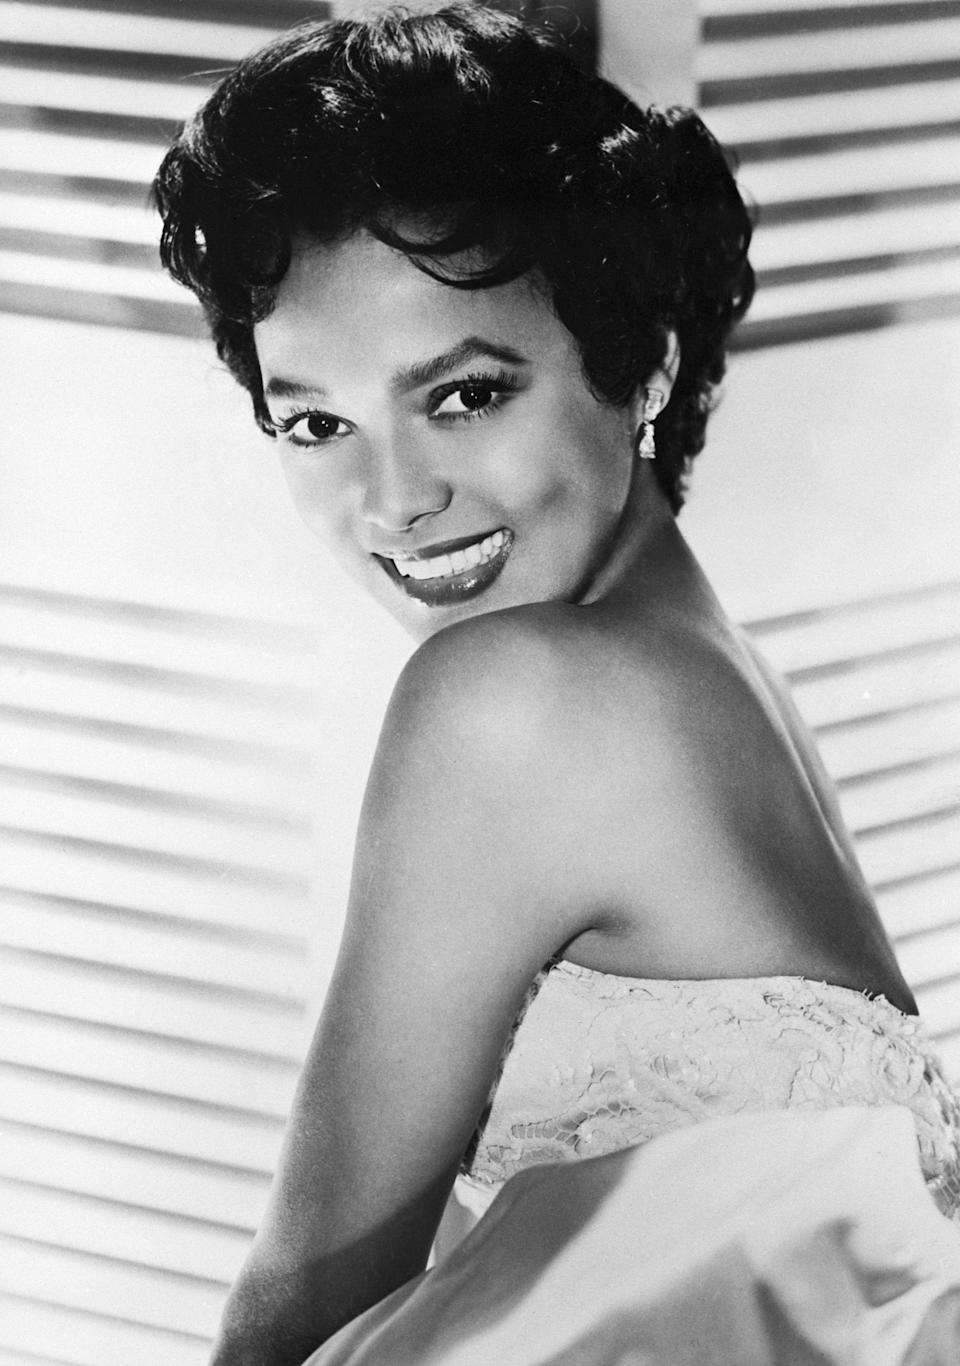 <p>Dorothy Dandridge could do it all: sing, act, dance. And her talent elevated her to the highest ranks of fame. But despite her skills and becoming the first Black woman to be nominated for the Best Actress Academy Award, the color of her skin held her back in Hollywood and limited the number of roles she was offered. Take a look back at the life of the groundbreaking star and find out how she made her mark on history.</p>